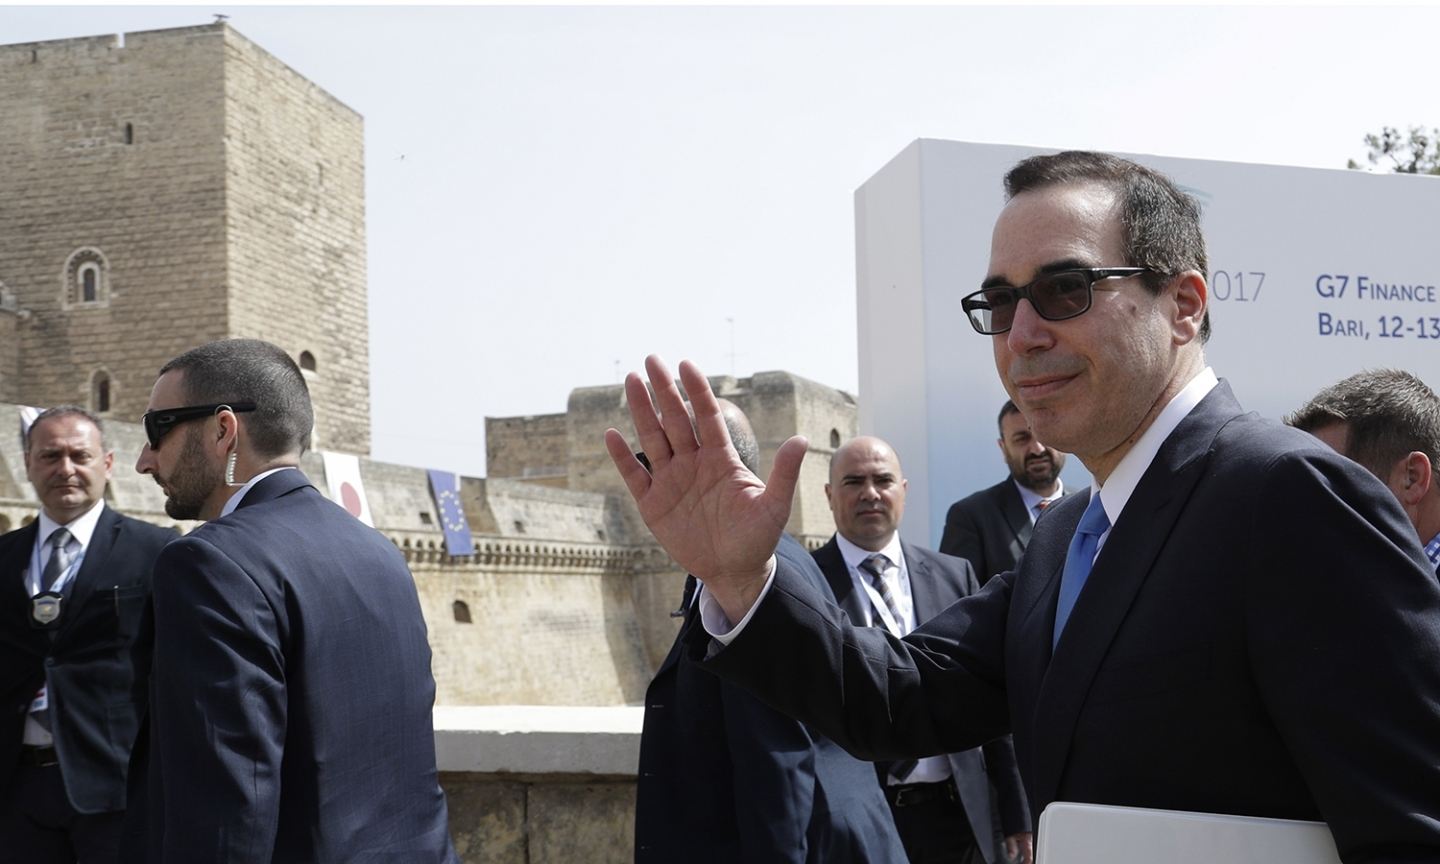 US Treasury Secretary Steven Mnuchin at G7 finance ministers meeting in Italy (AP Photo/Andrew Medichini)